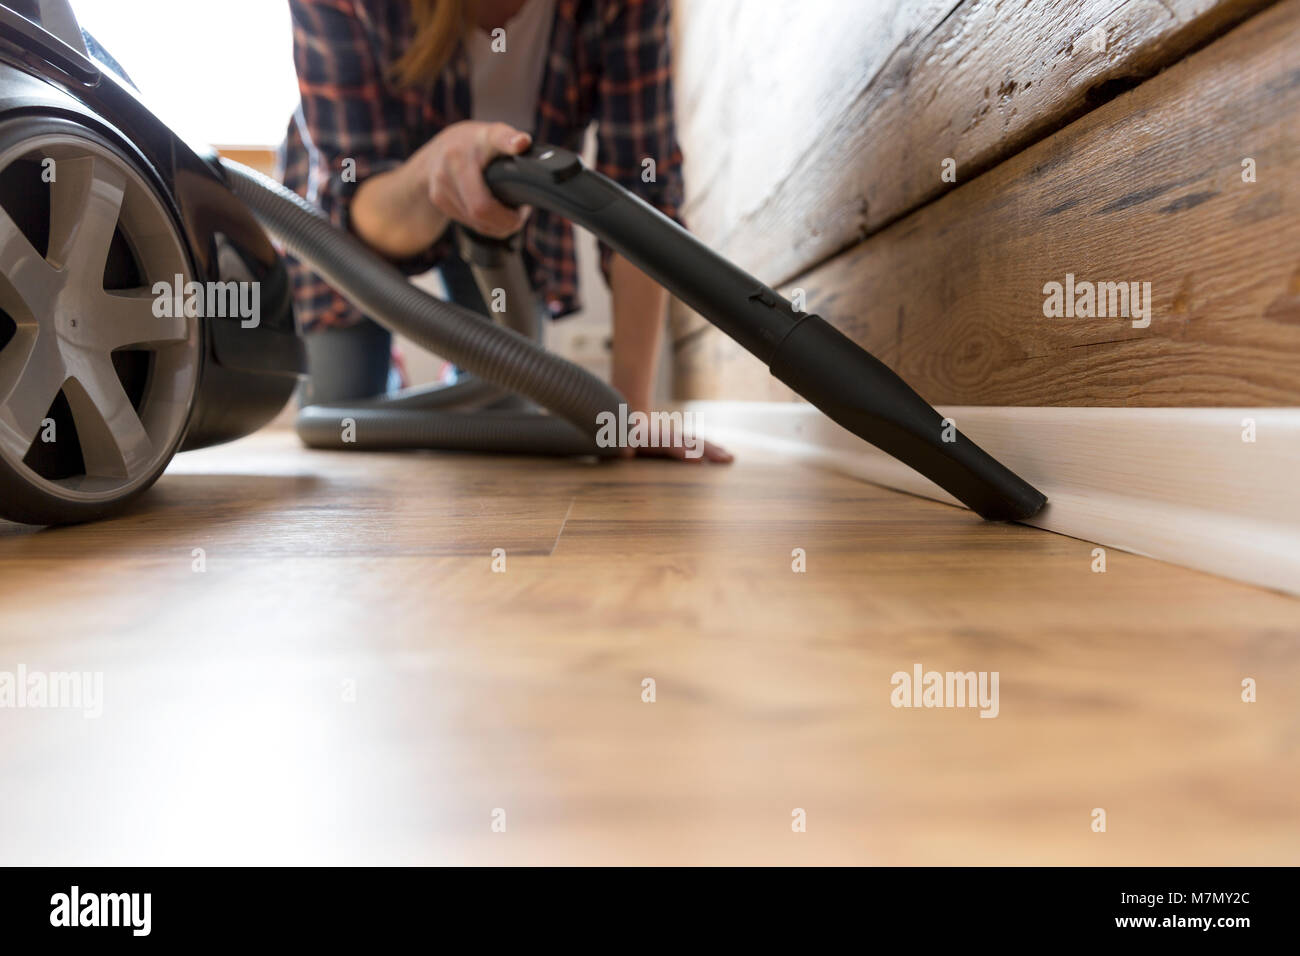 People, housework and housekeeping concept - happy woman with vacuum cleaner at home. Spring cleaning - Stock Image